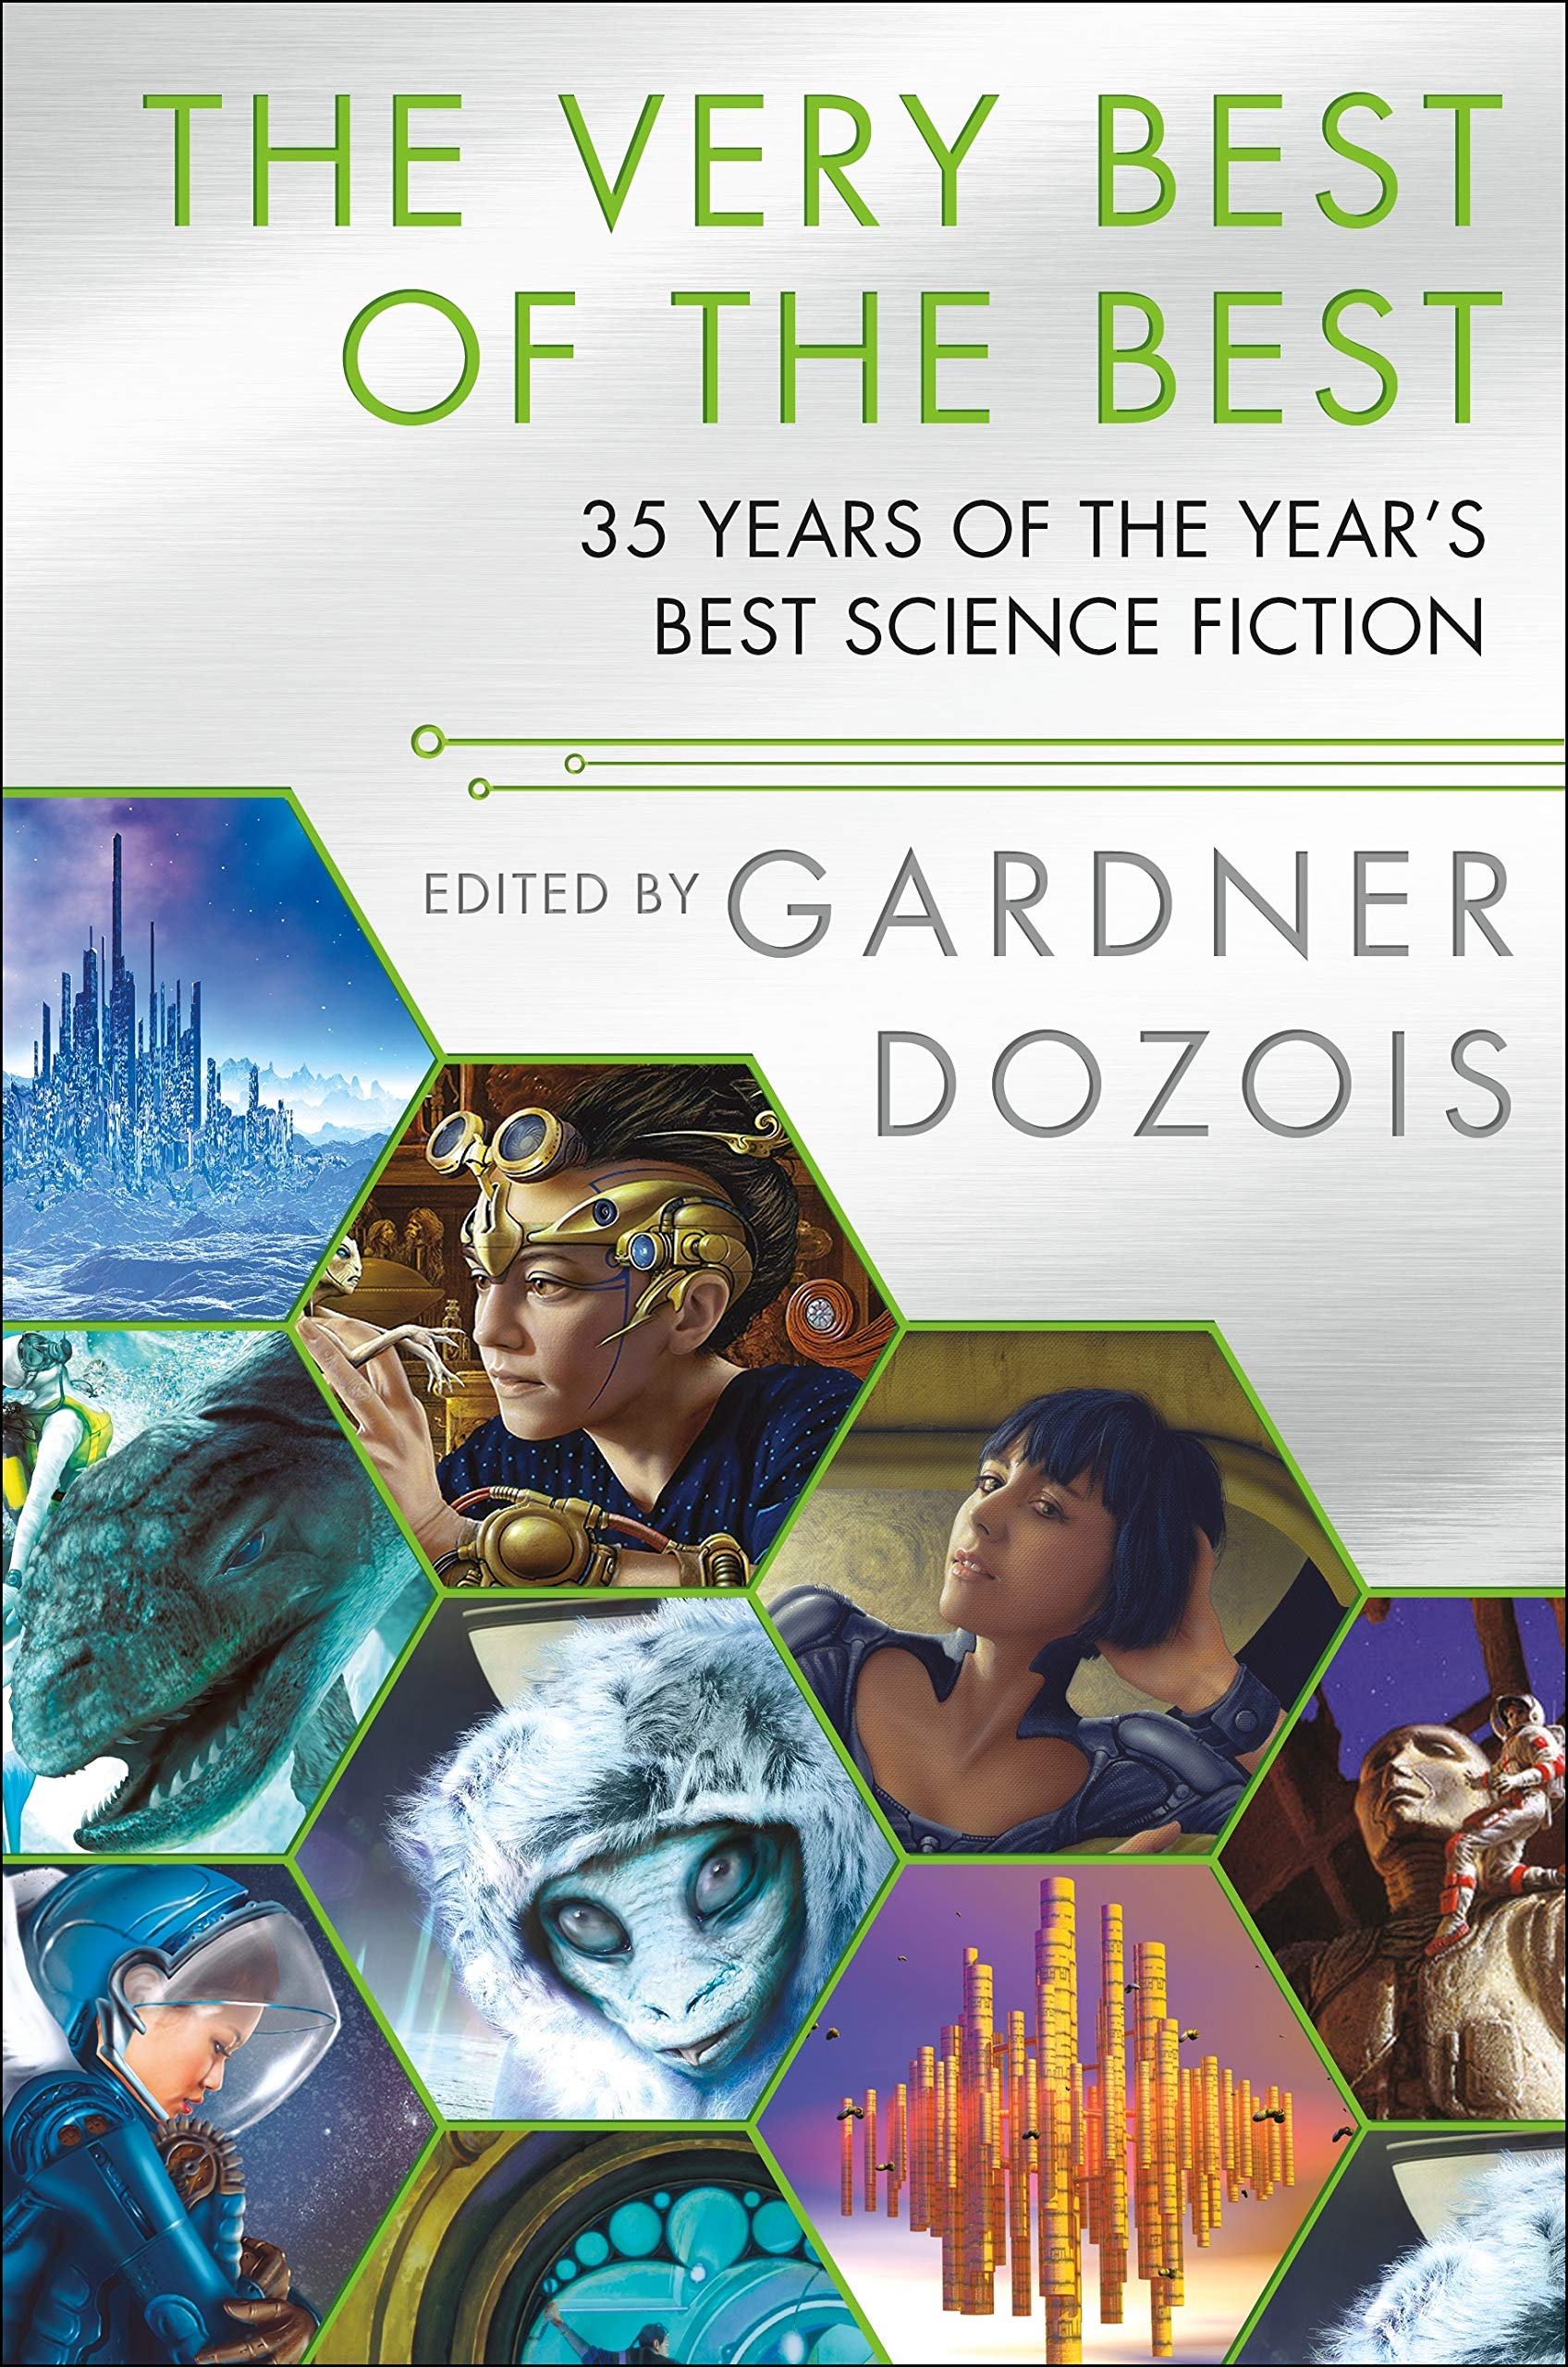 Image result for very best of the best 35 years of the year's best science fiction